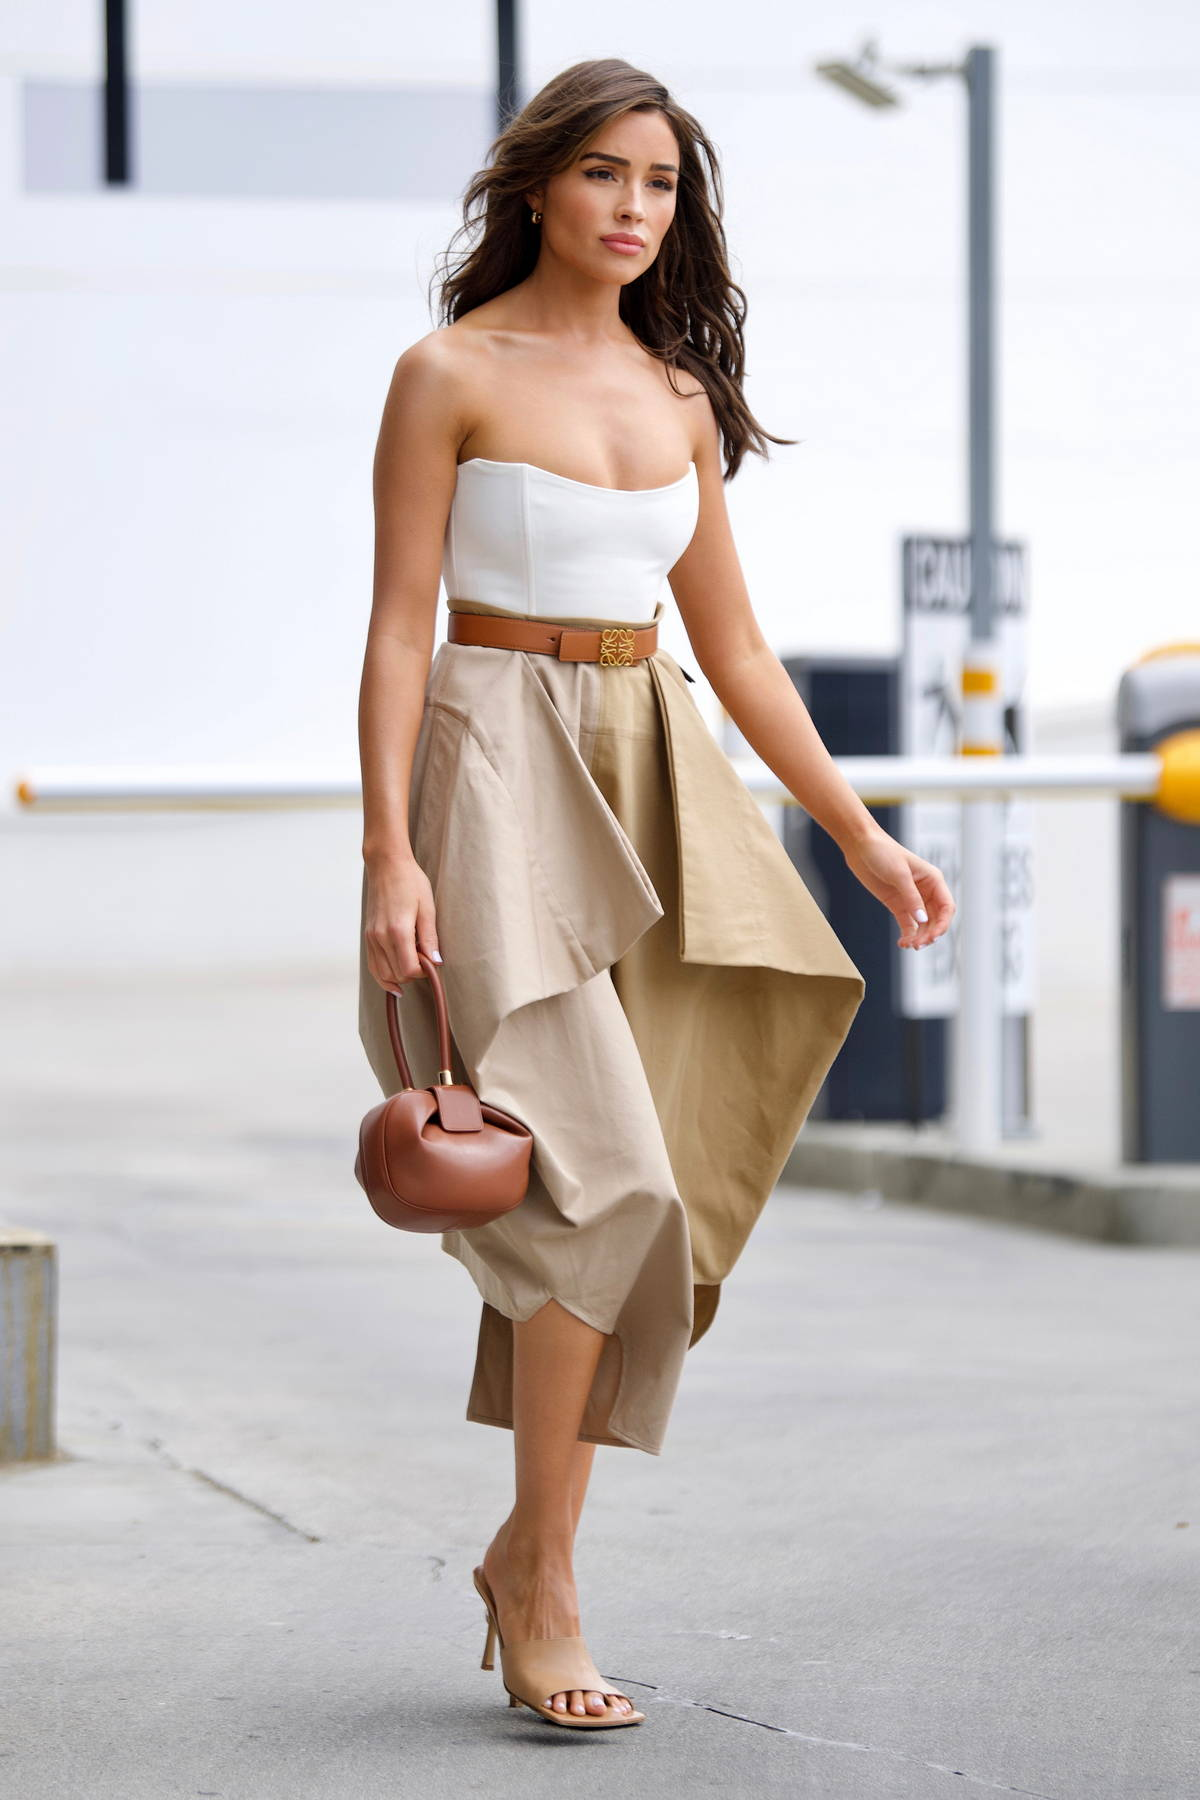 Olivia Culpo looks flawless in a white tube top and beige skirt as she leaves a business meeting in Beverly Hills, California